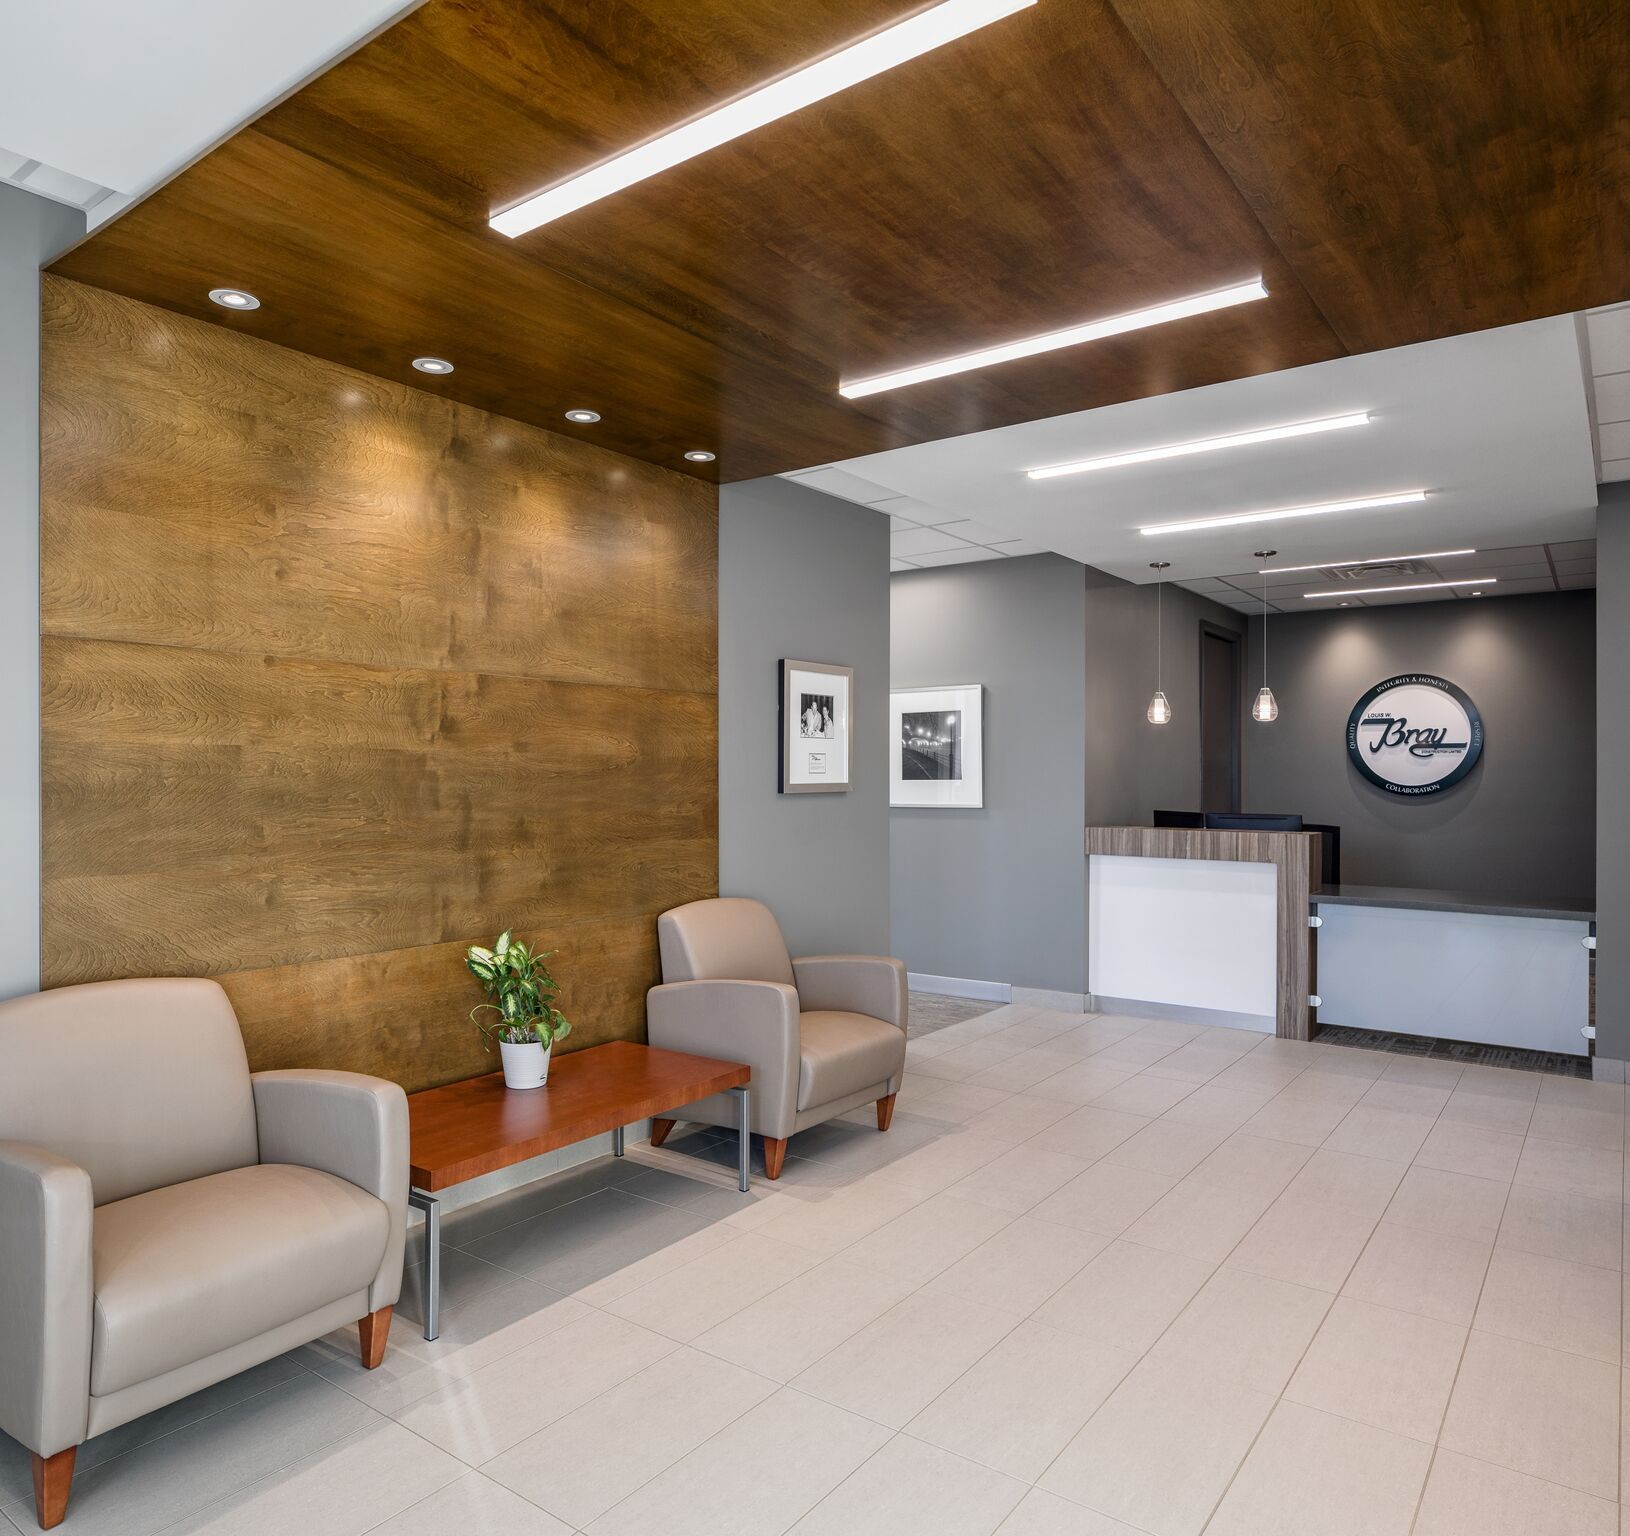 Louis W Bray Construction Head Office  Project By Parallel